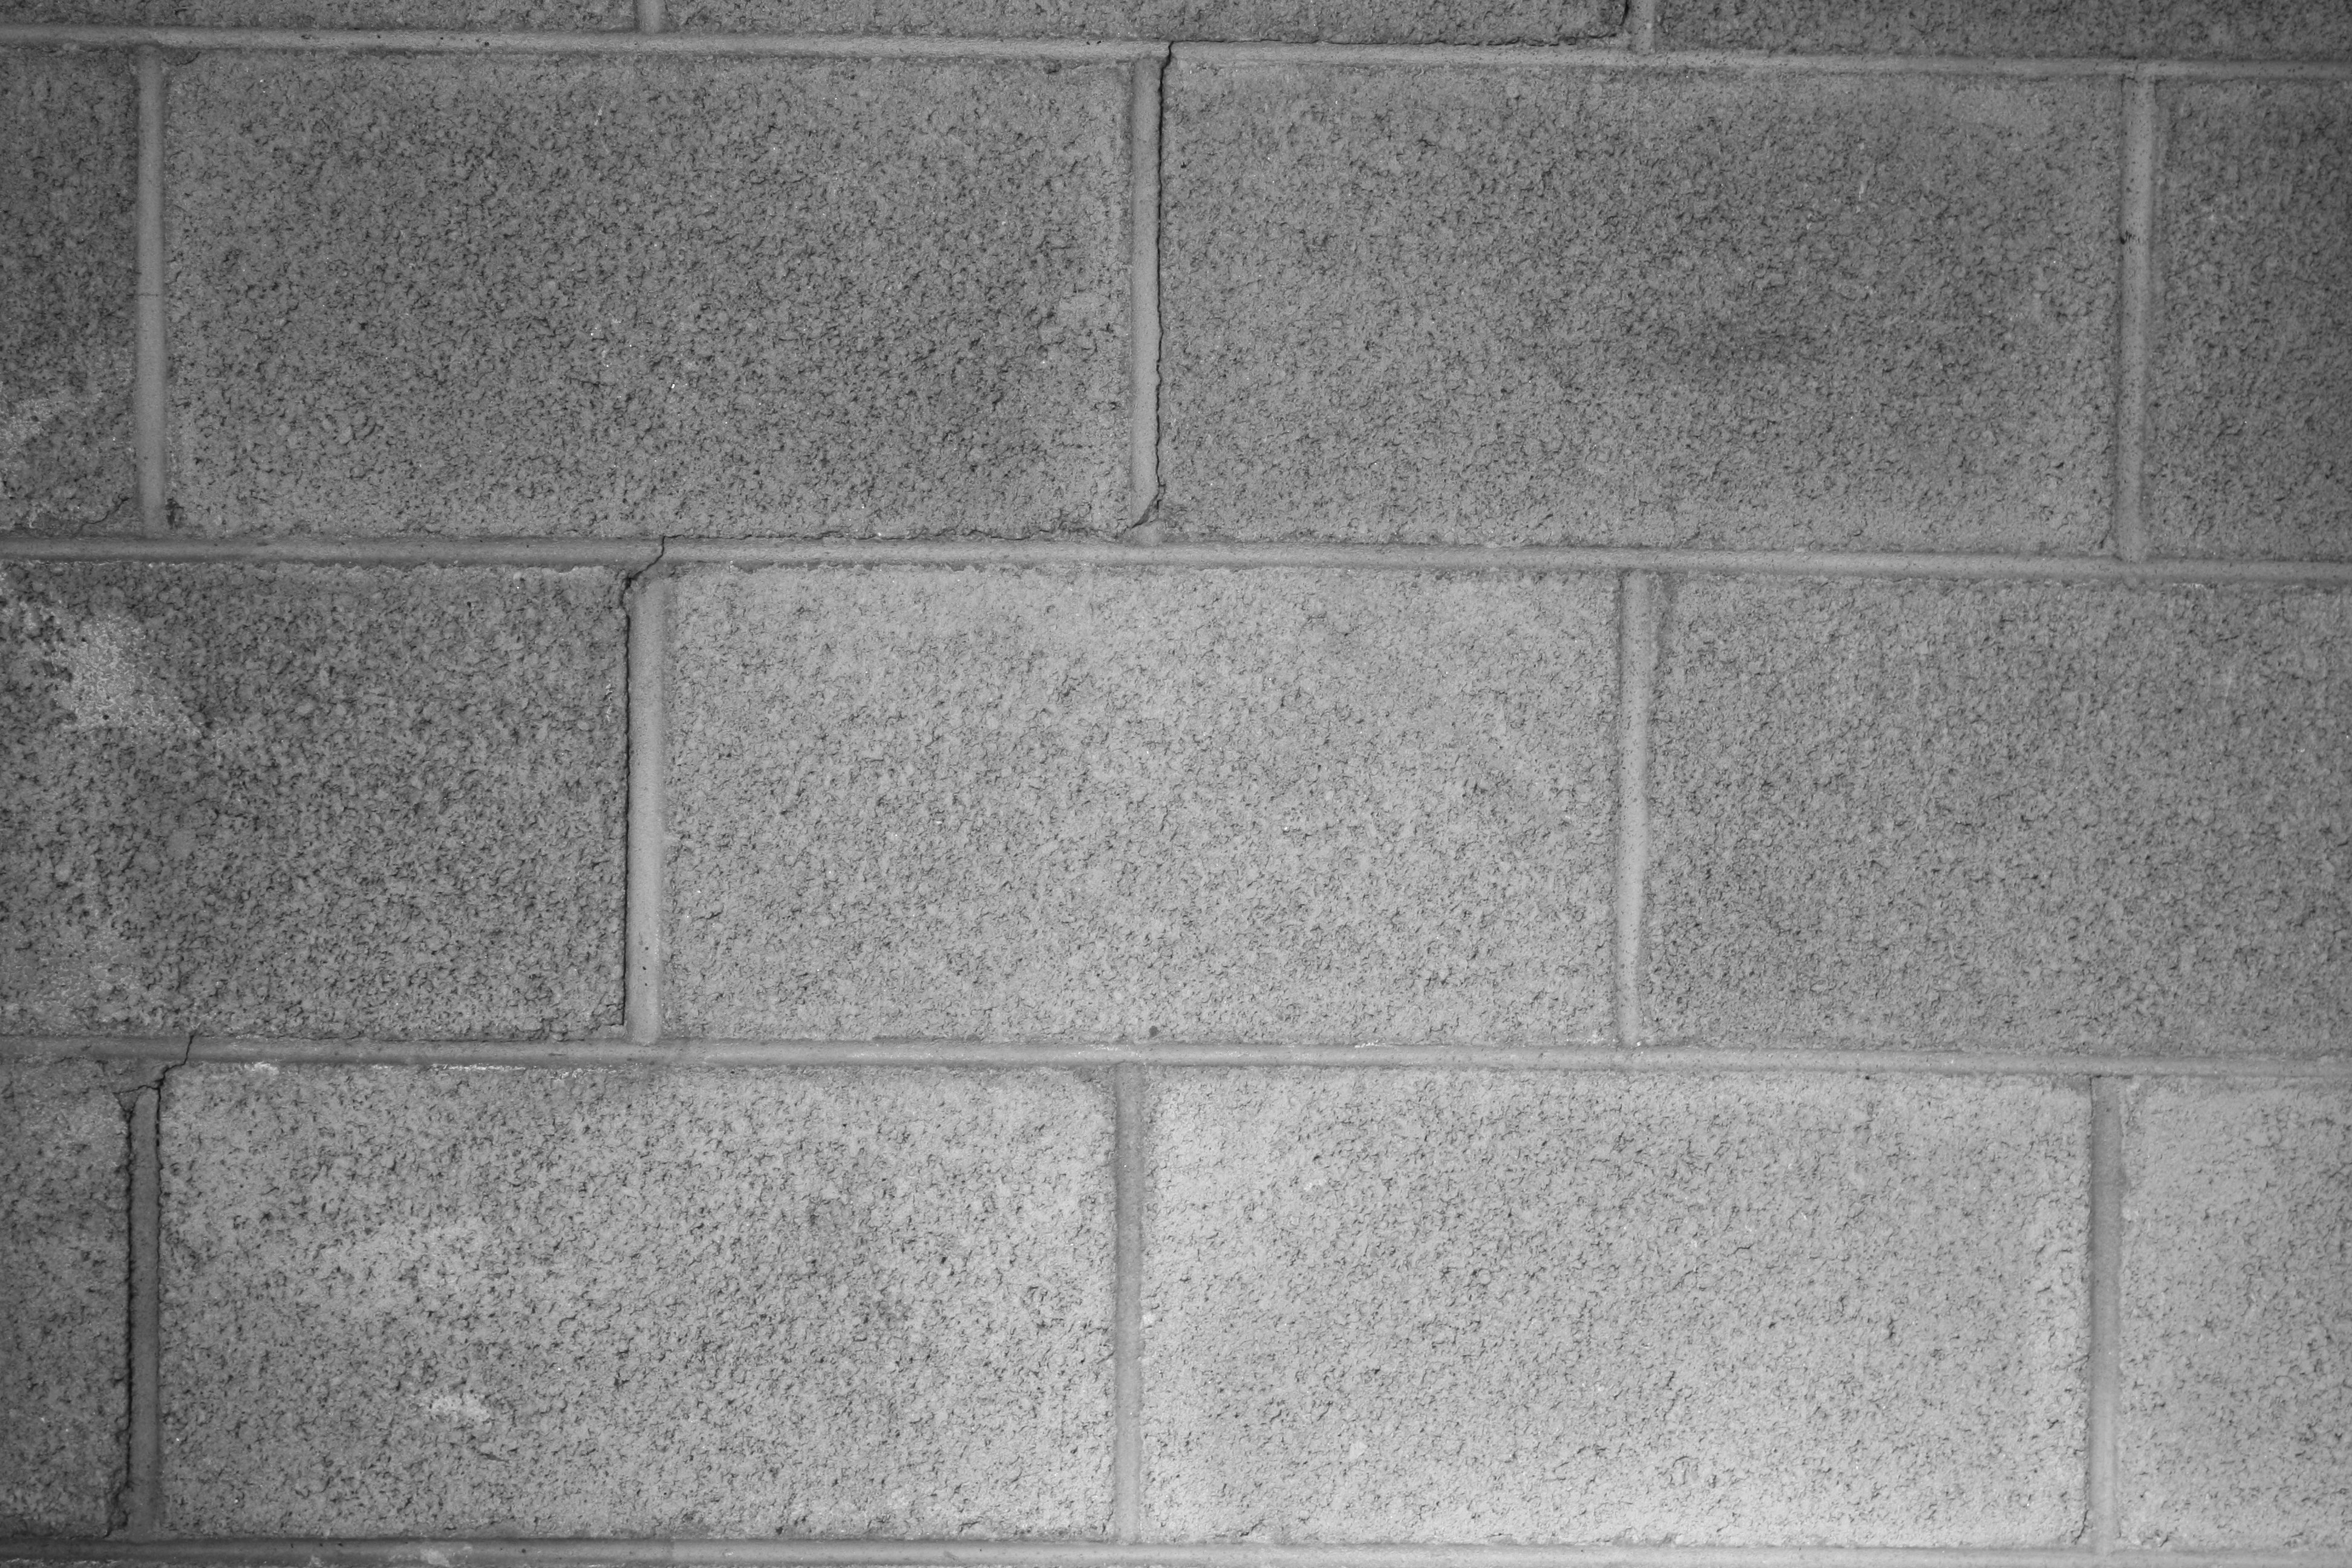 concrete block Learning to lay concrete blocks is a valuable diy skill and one that could make many projects a breeze here are some tips and instructions that will help make your first concrete block project that much easier.